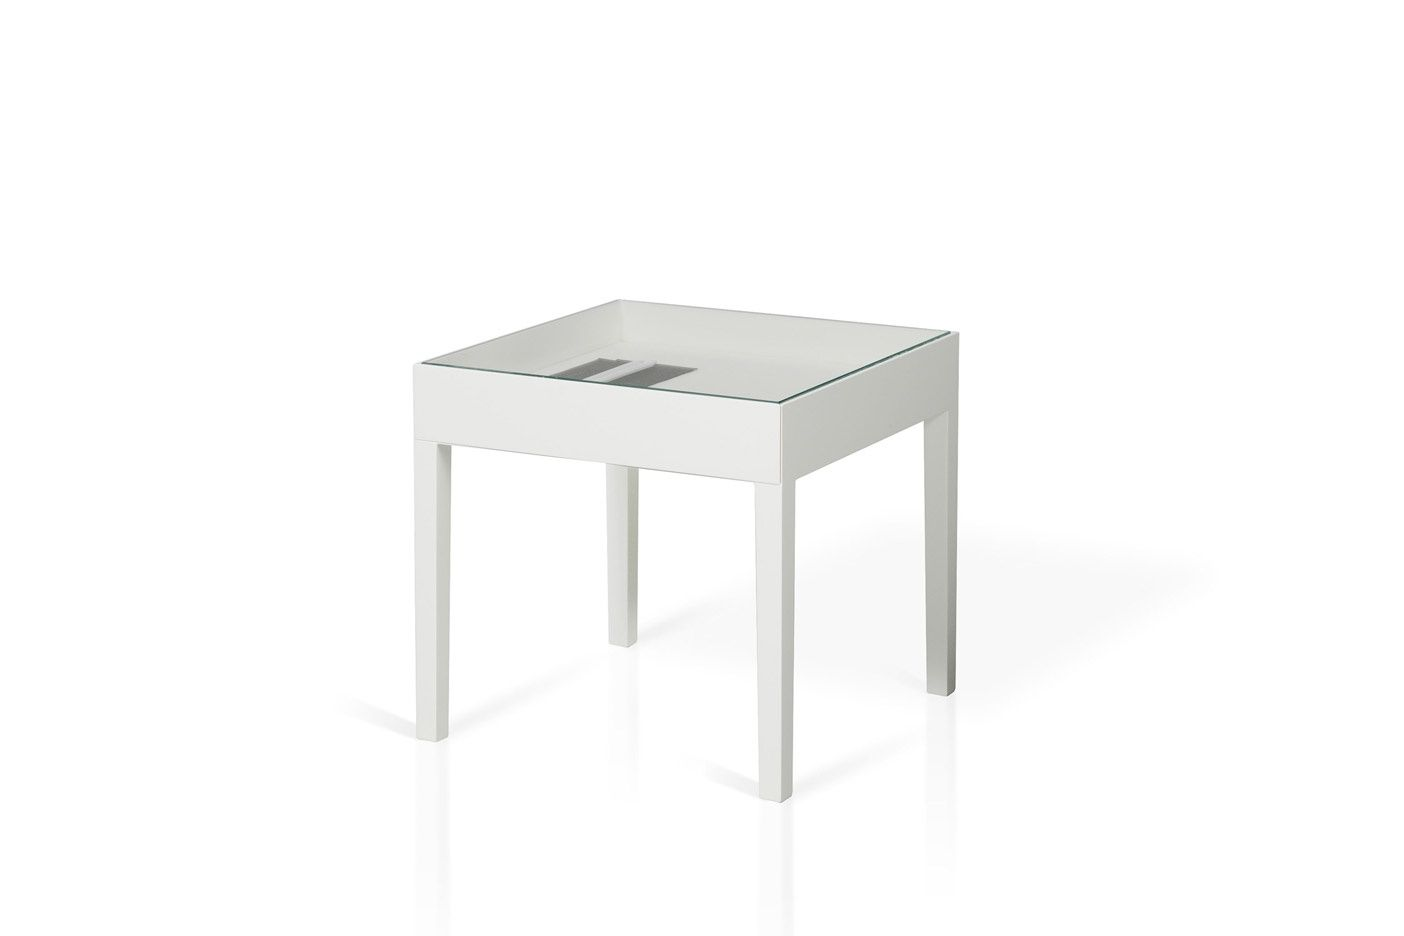 Showcase Table Design By Front Porro Spa Product Pinterest # Muebles Pagolin